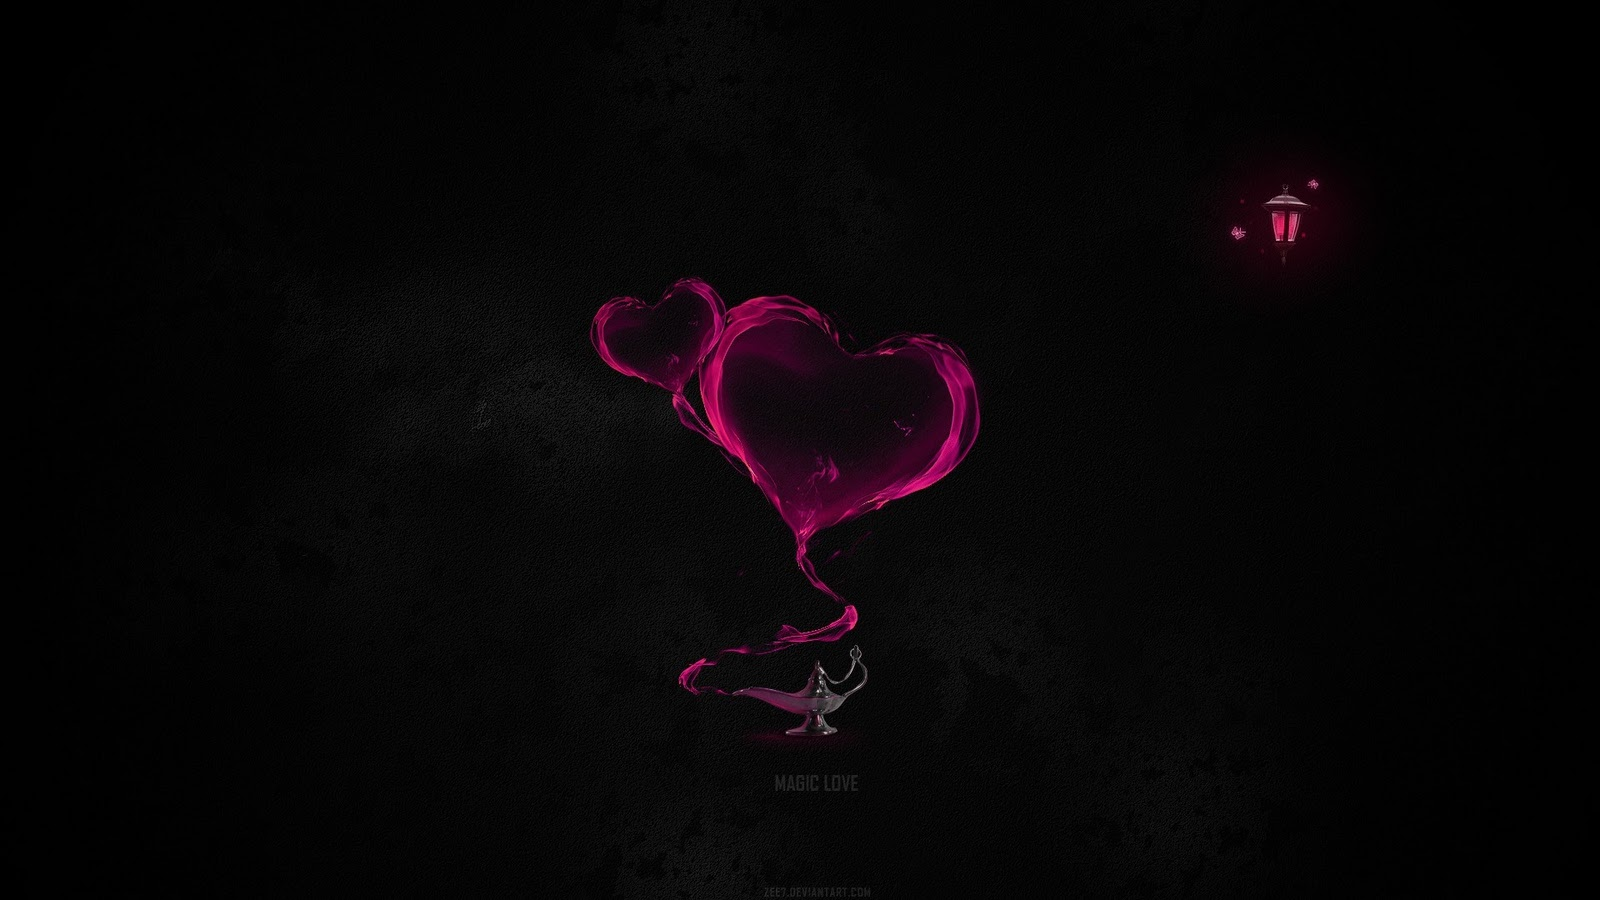 HD Love Wallpaper Free Download ~ Wallpaper Area | HD Wallpapers Download